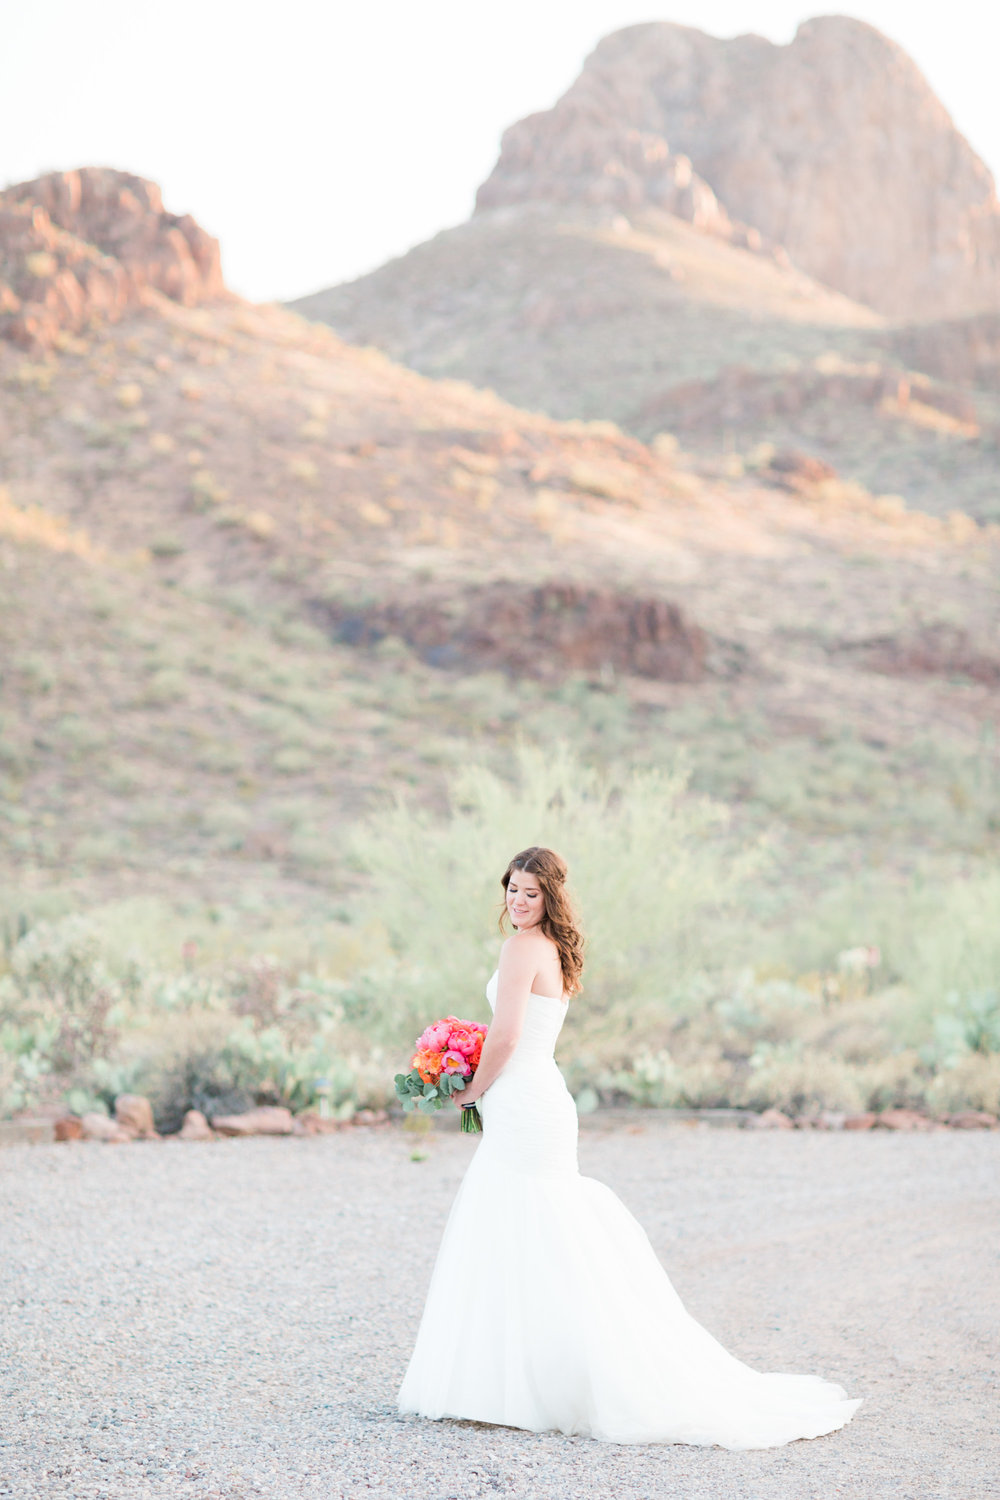 Gorgeous bride holding her bouquet in a gorgeous desert setting with huge mountains in the background. Love this wedding venue!